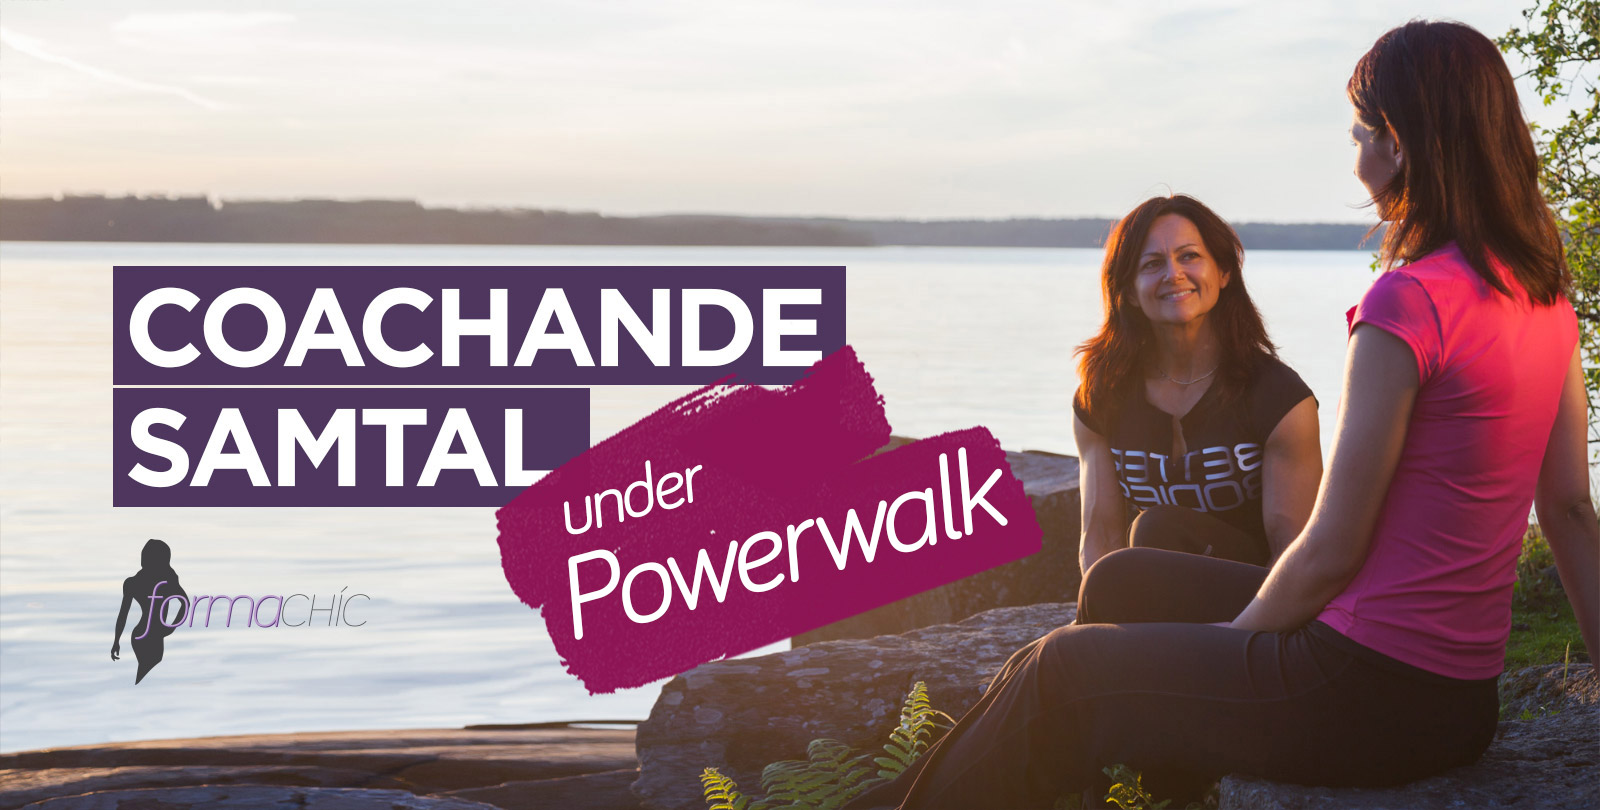 Coachande samtal under Powerwalk